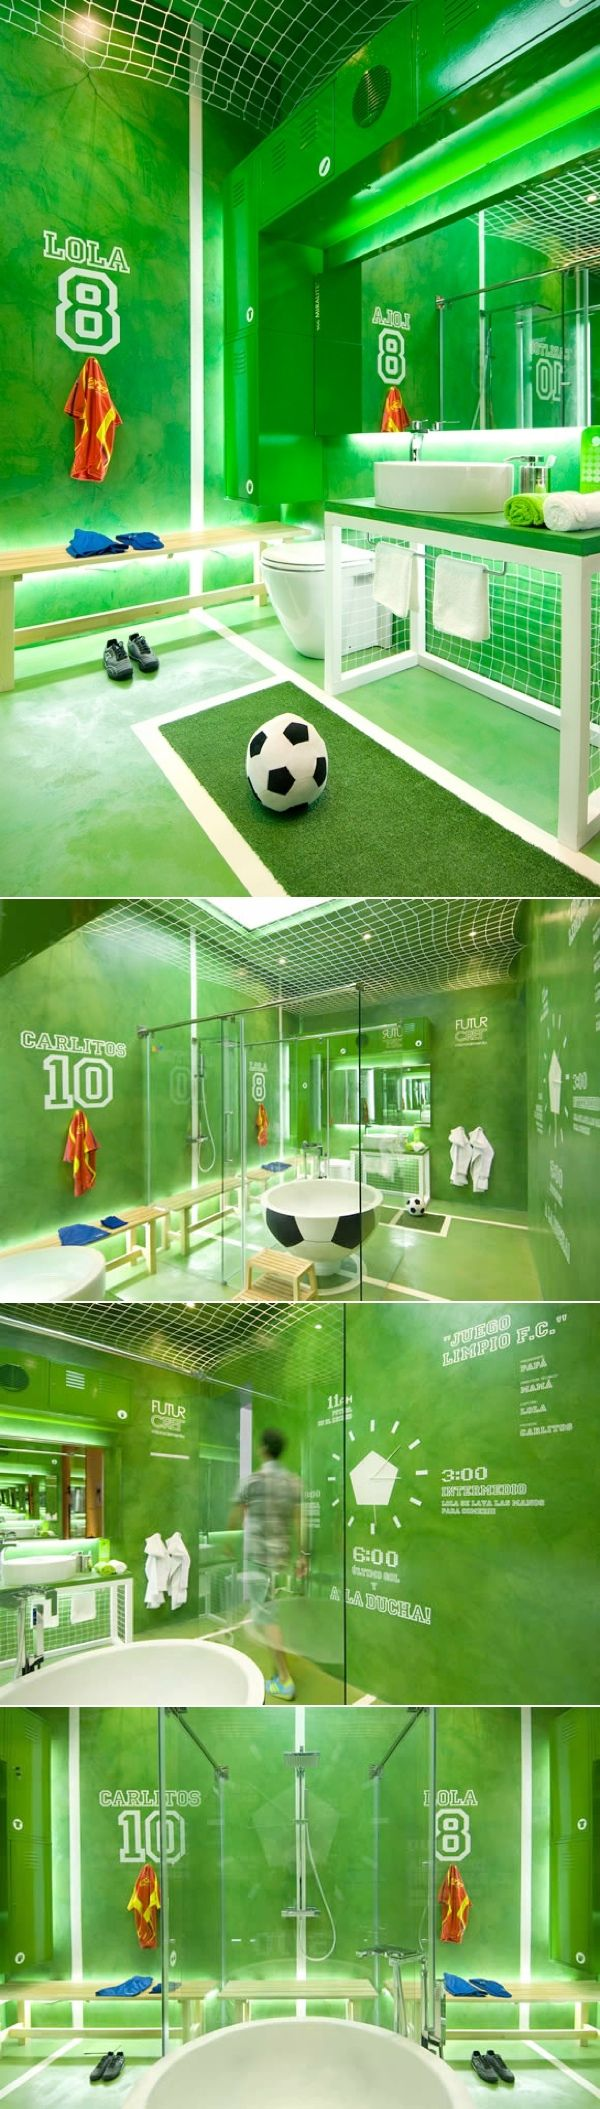 Soccer Decor Ideas Onsoccer Room Boys